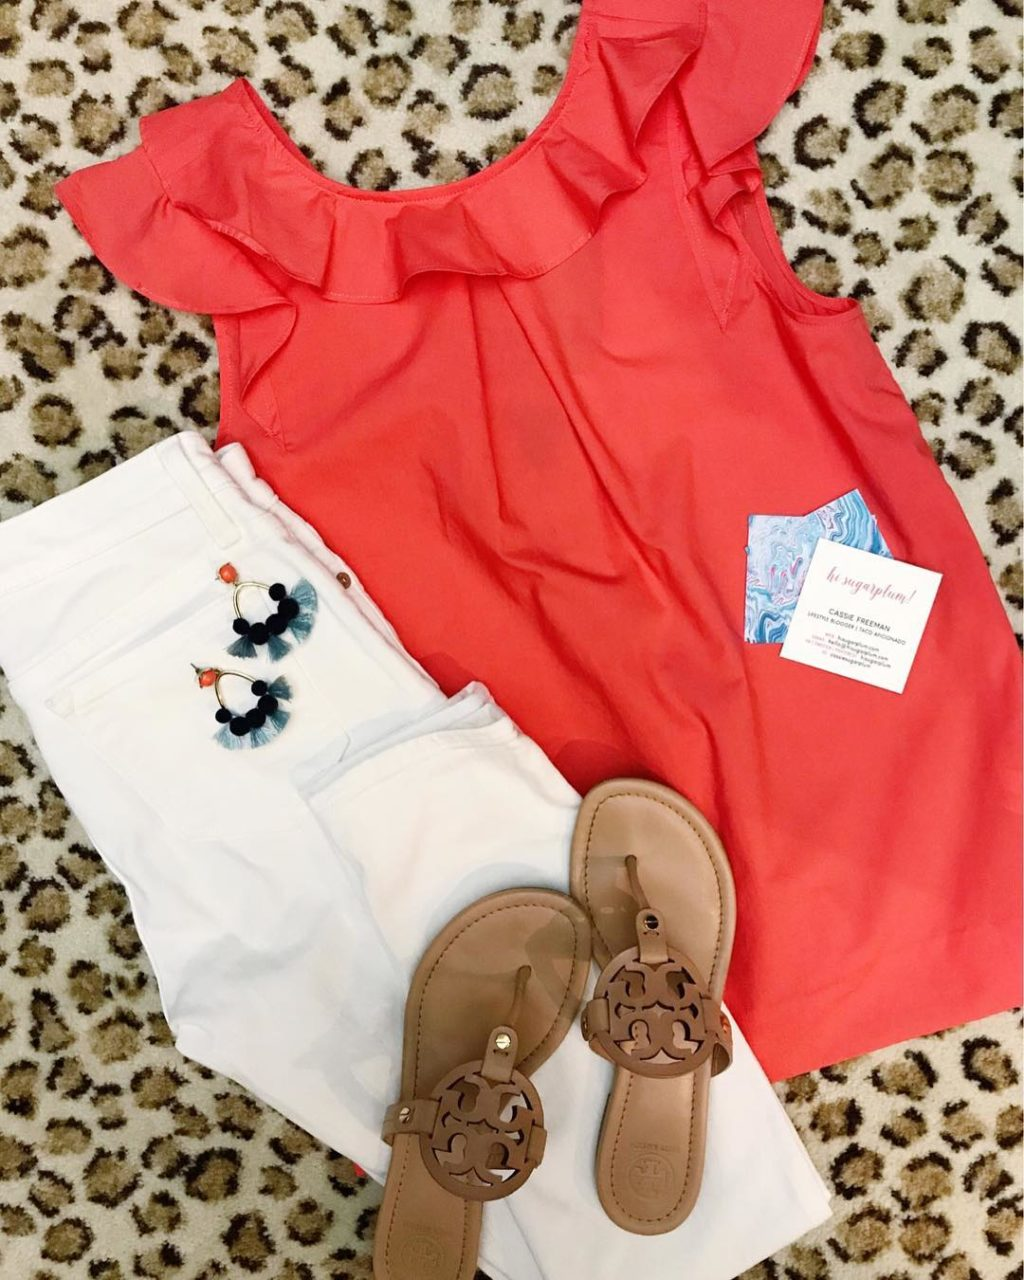 jcrew ruffle top summer outfit